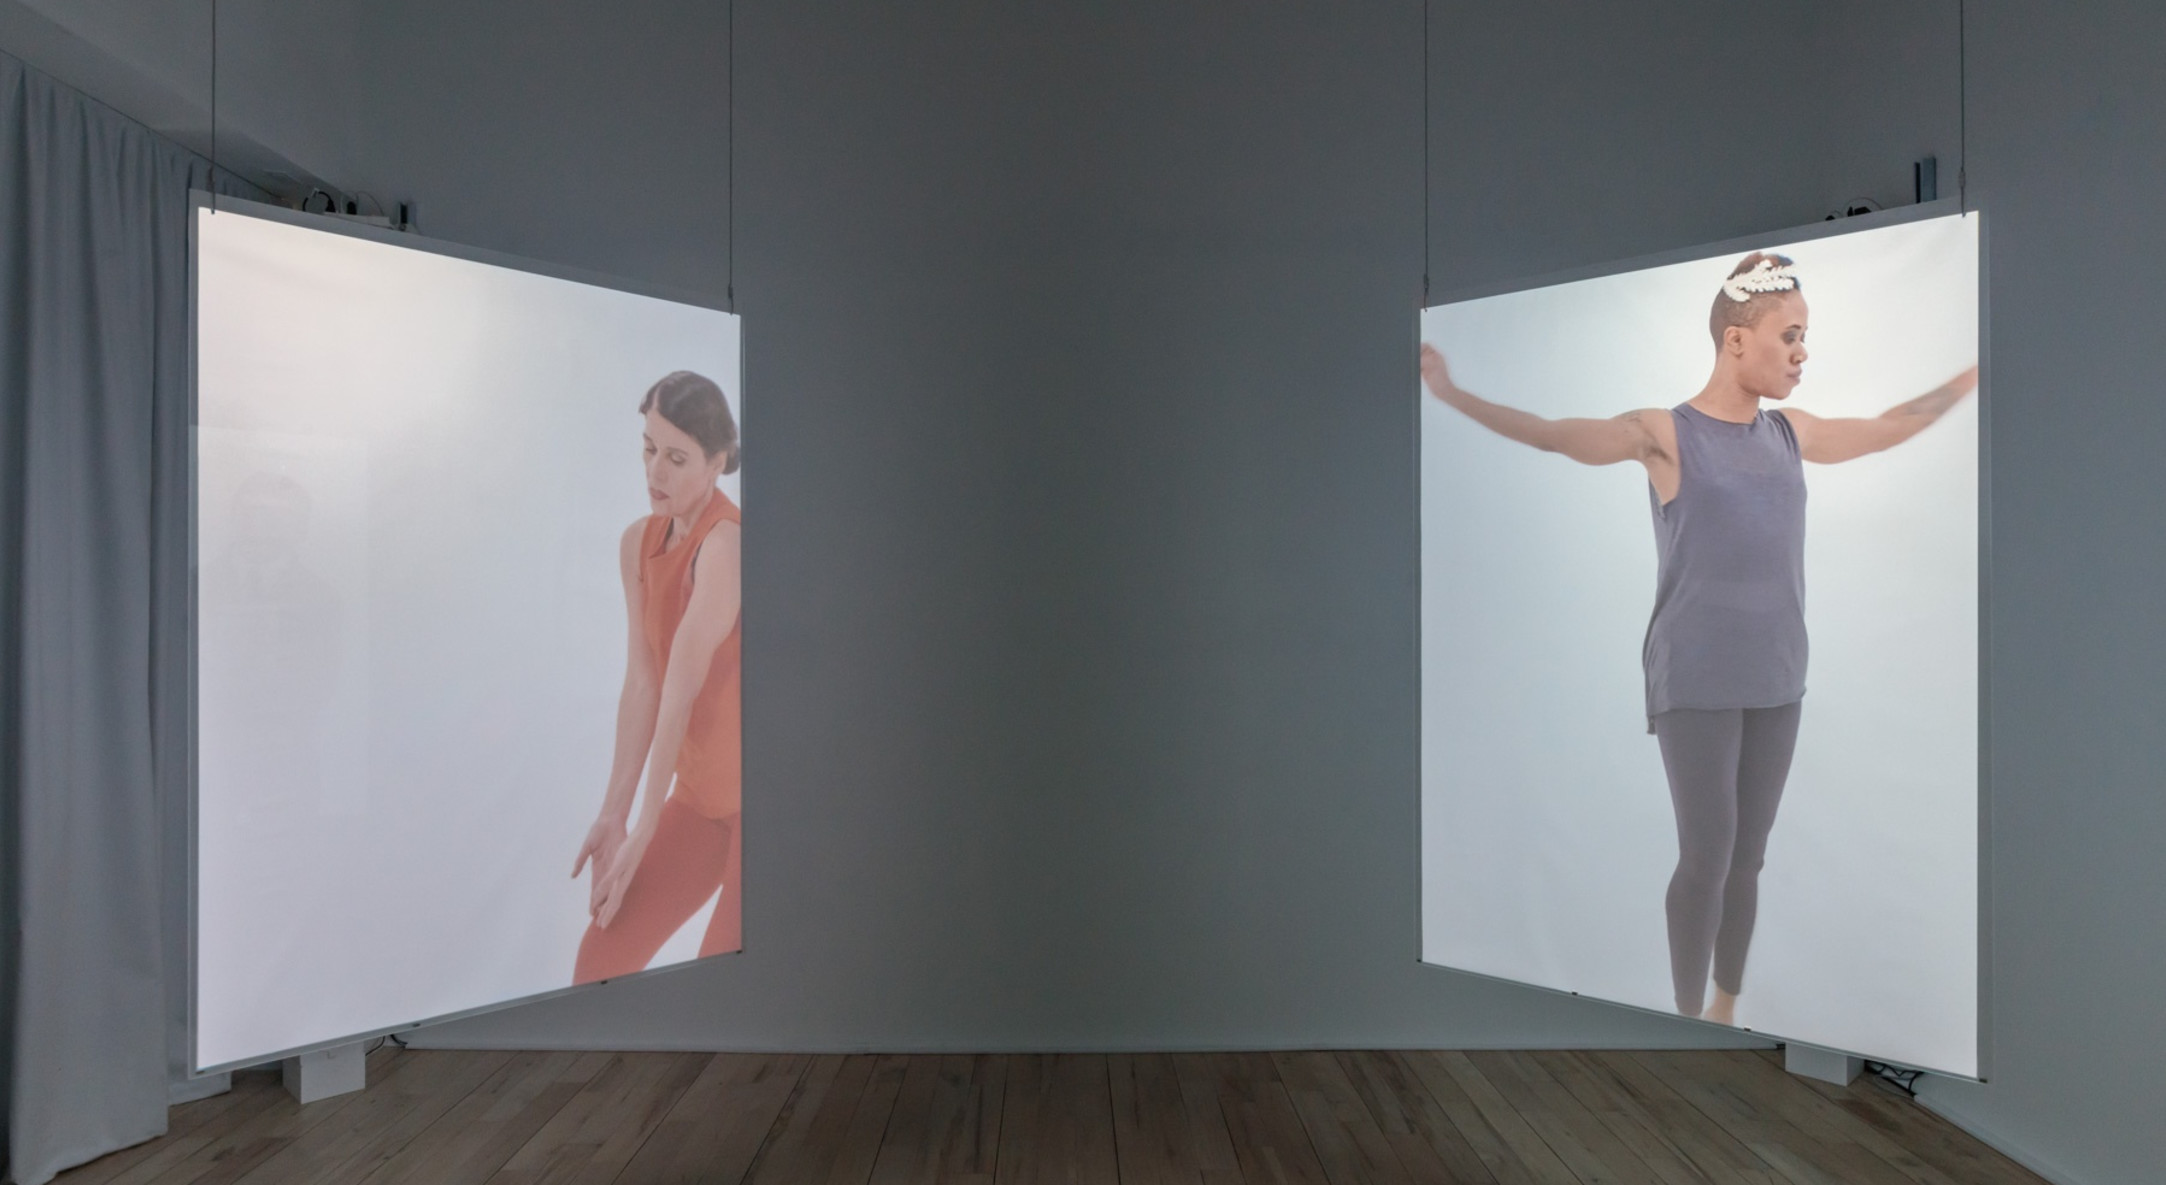 Installation view of Andrea Geyer, Truly Spun Never at Hales Project Room, New York